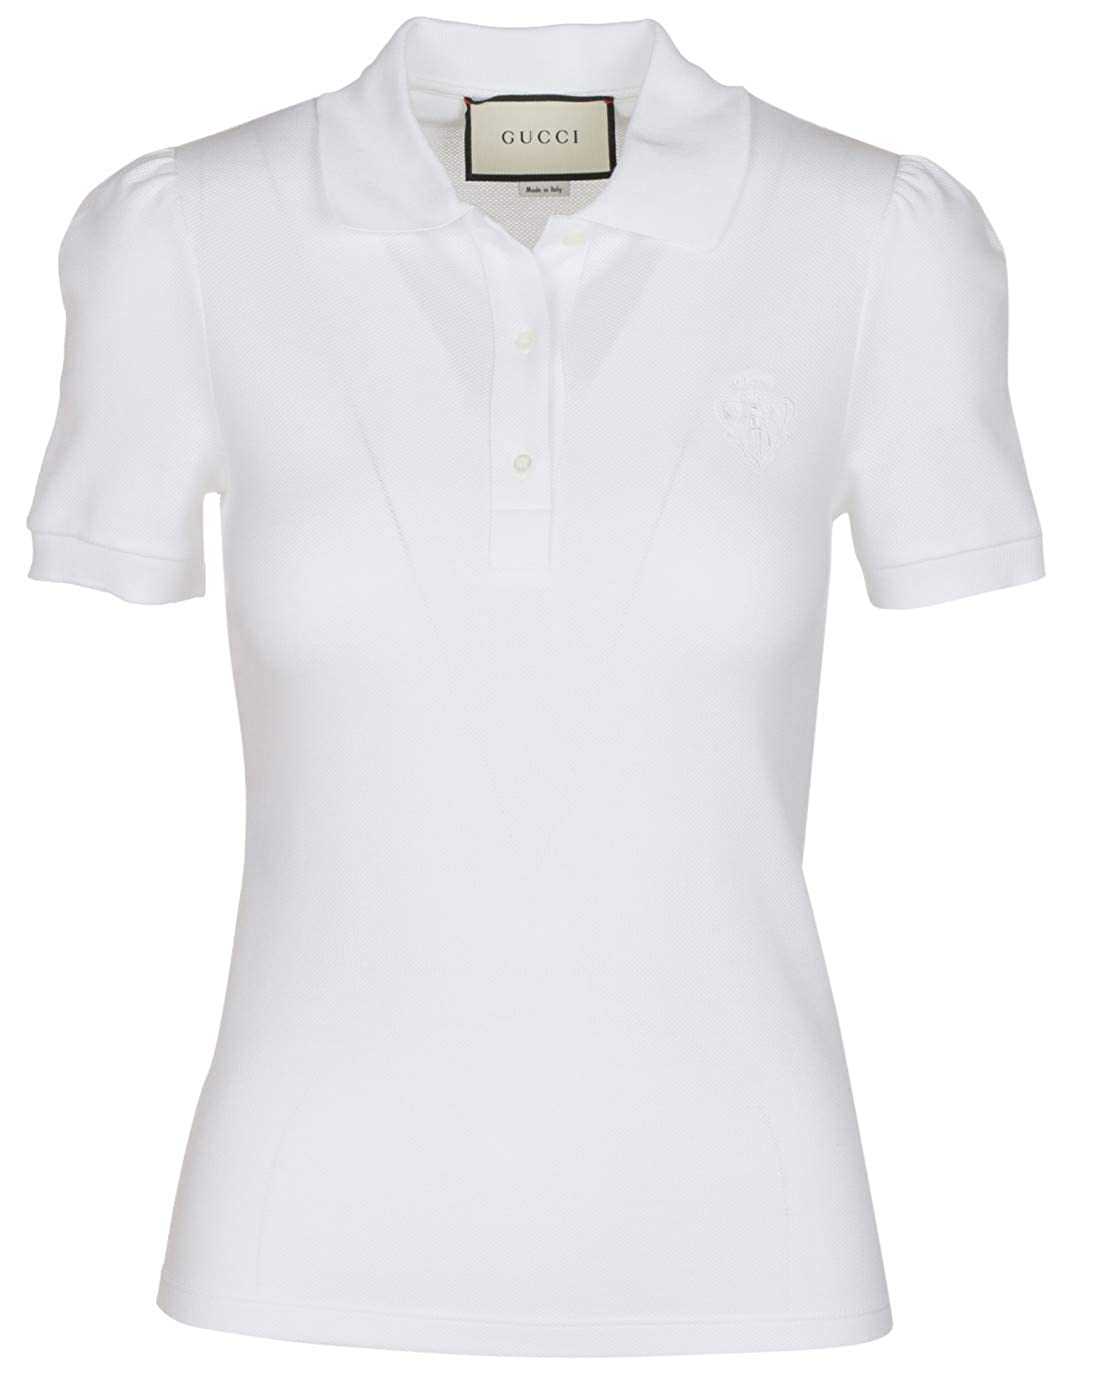 294ad255a Amazon.com: Gucci Women's White Cotton Short Sleeve Polo Shirt, White, XS:  Clothing